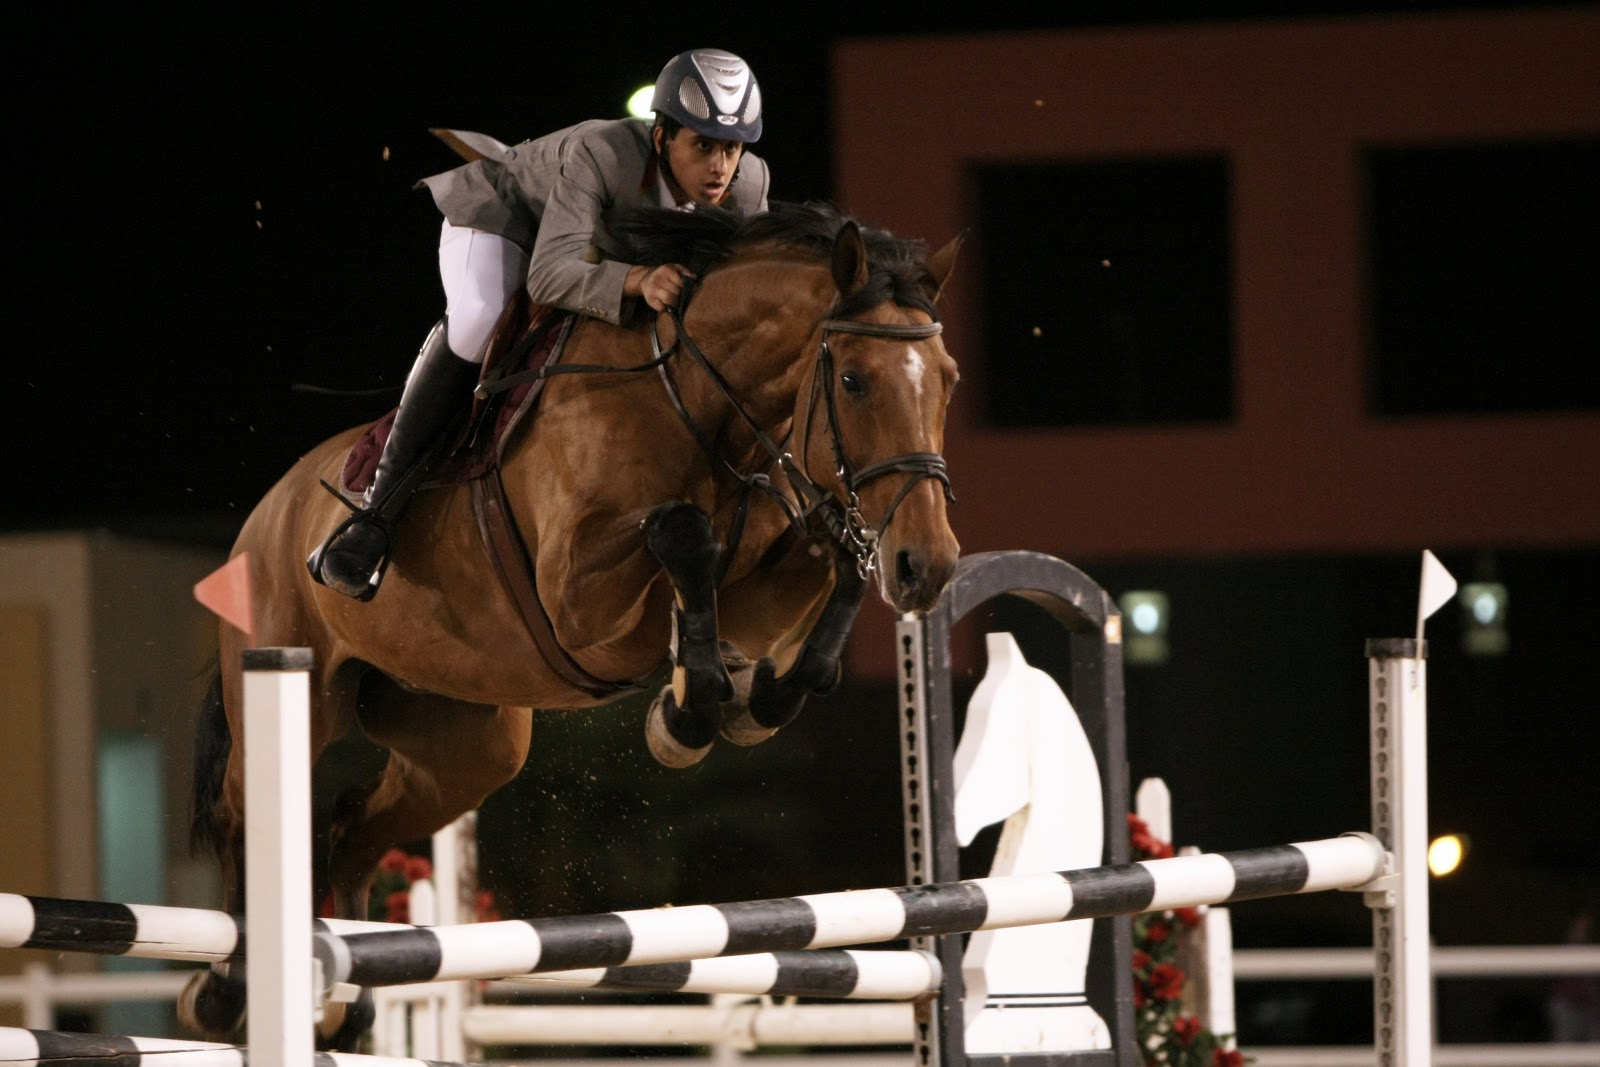 My Travels My Experiences Equestrian Clubs Kuwait